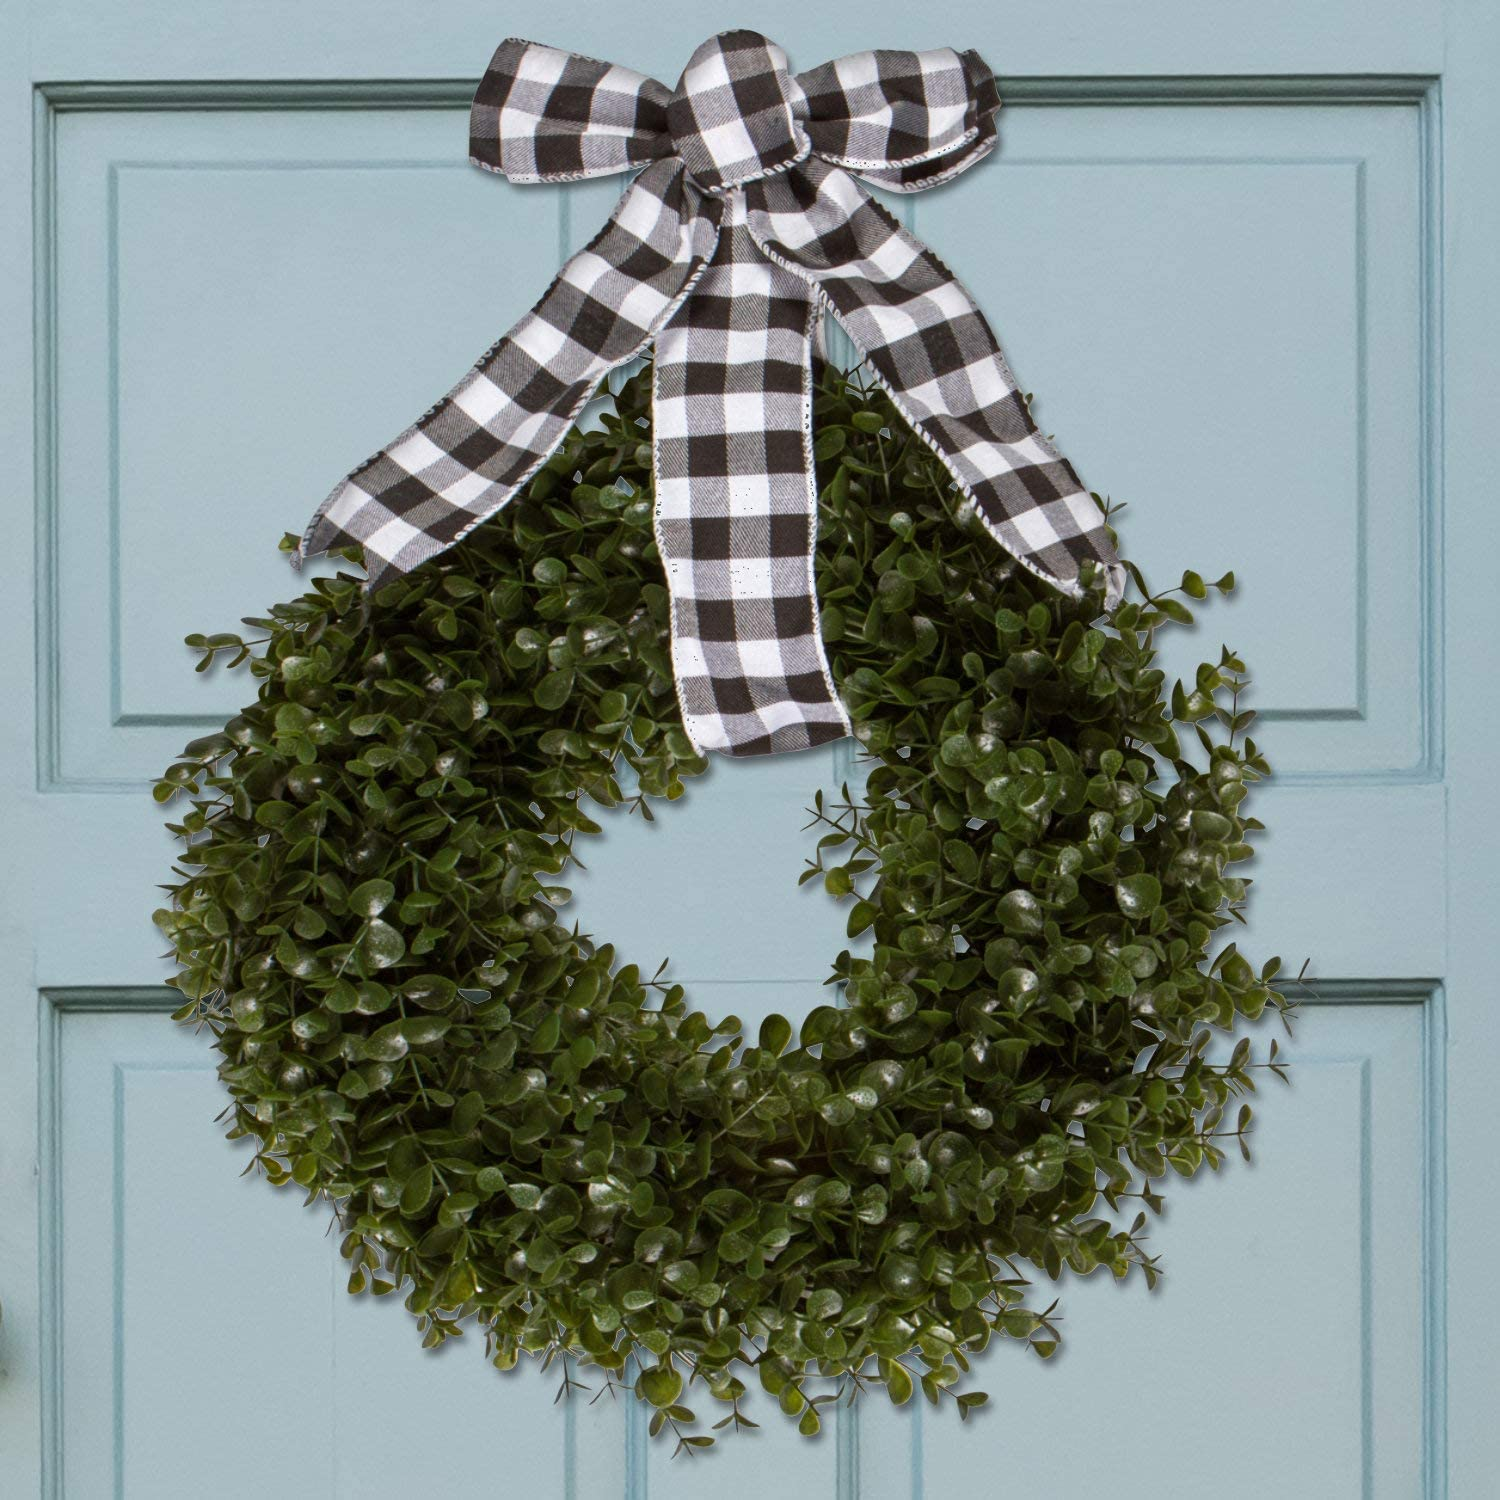 Orchid & Ivy 17-Inch Green Artificial Boxwood Wreath with Black/White Plaid Hanging Ribbon - Outdoor Indoor All-Weather Farmhouse Decor Front Door Wall Hanging Christmas Decoration